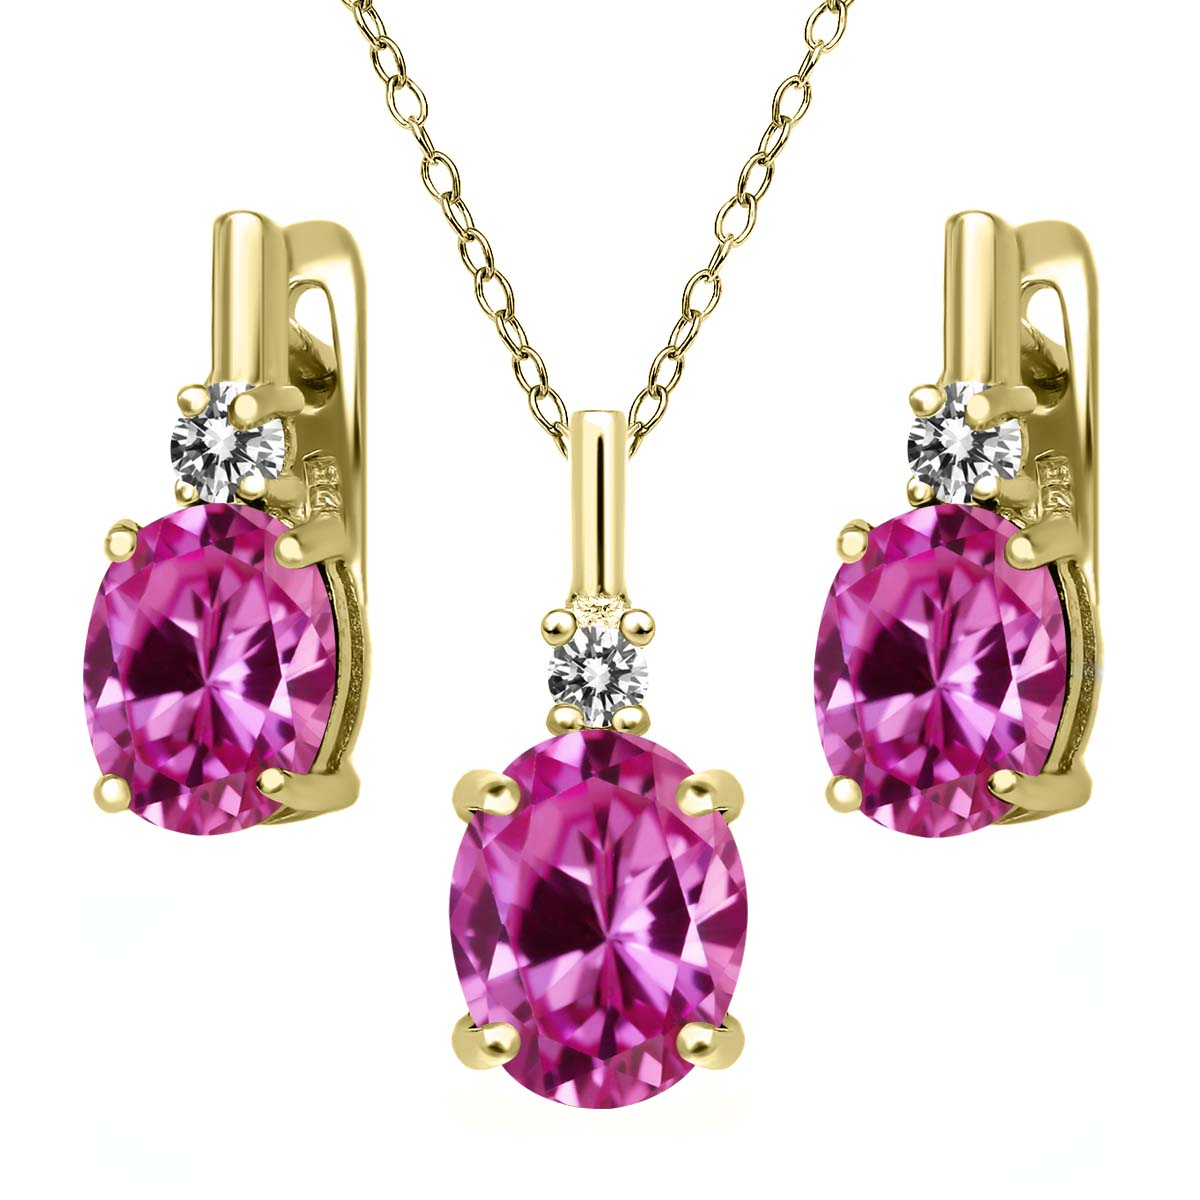 7.27 Ct Pink Created Sapphire White Diamond 18K Yellow Gold Plated Silver Pendant Earrings Set by